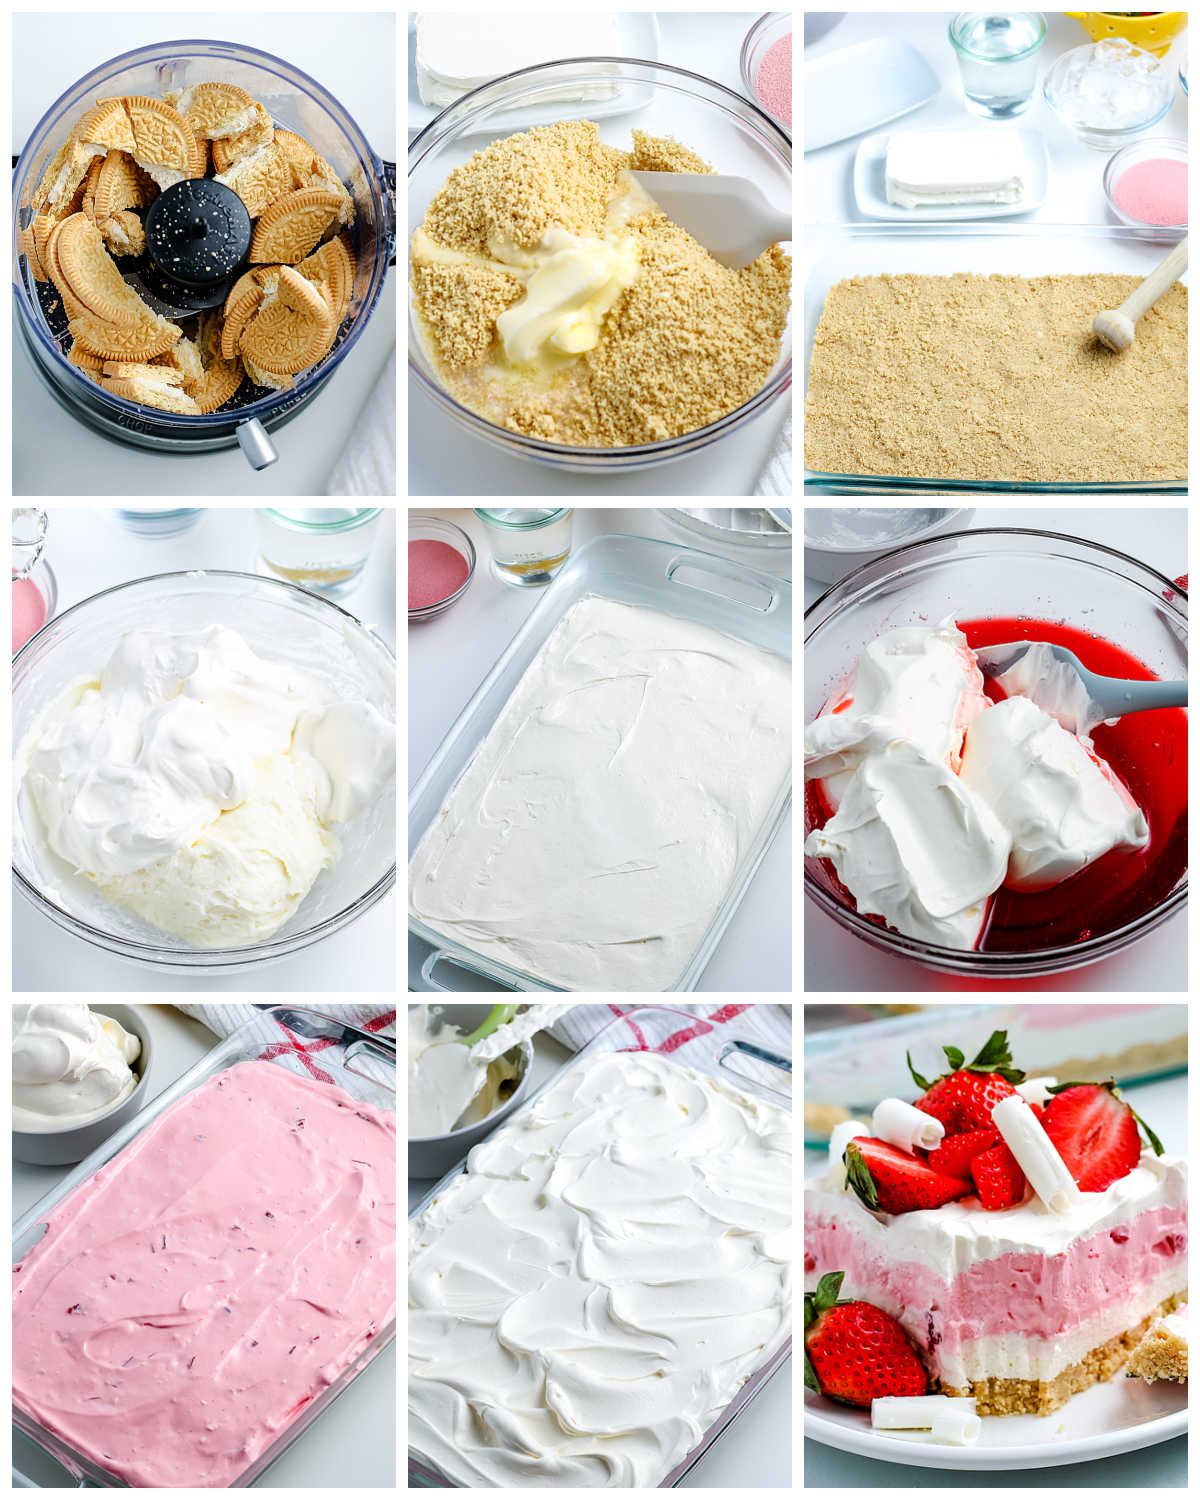 A picture collage of how to make Strawberry Lasagna.